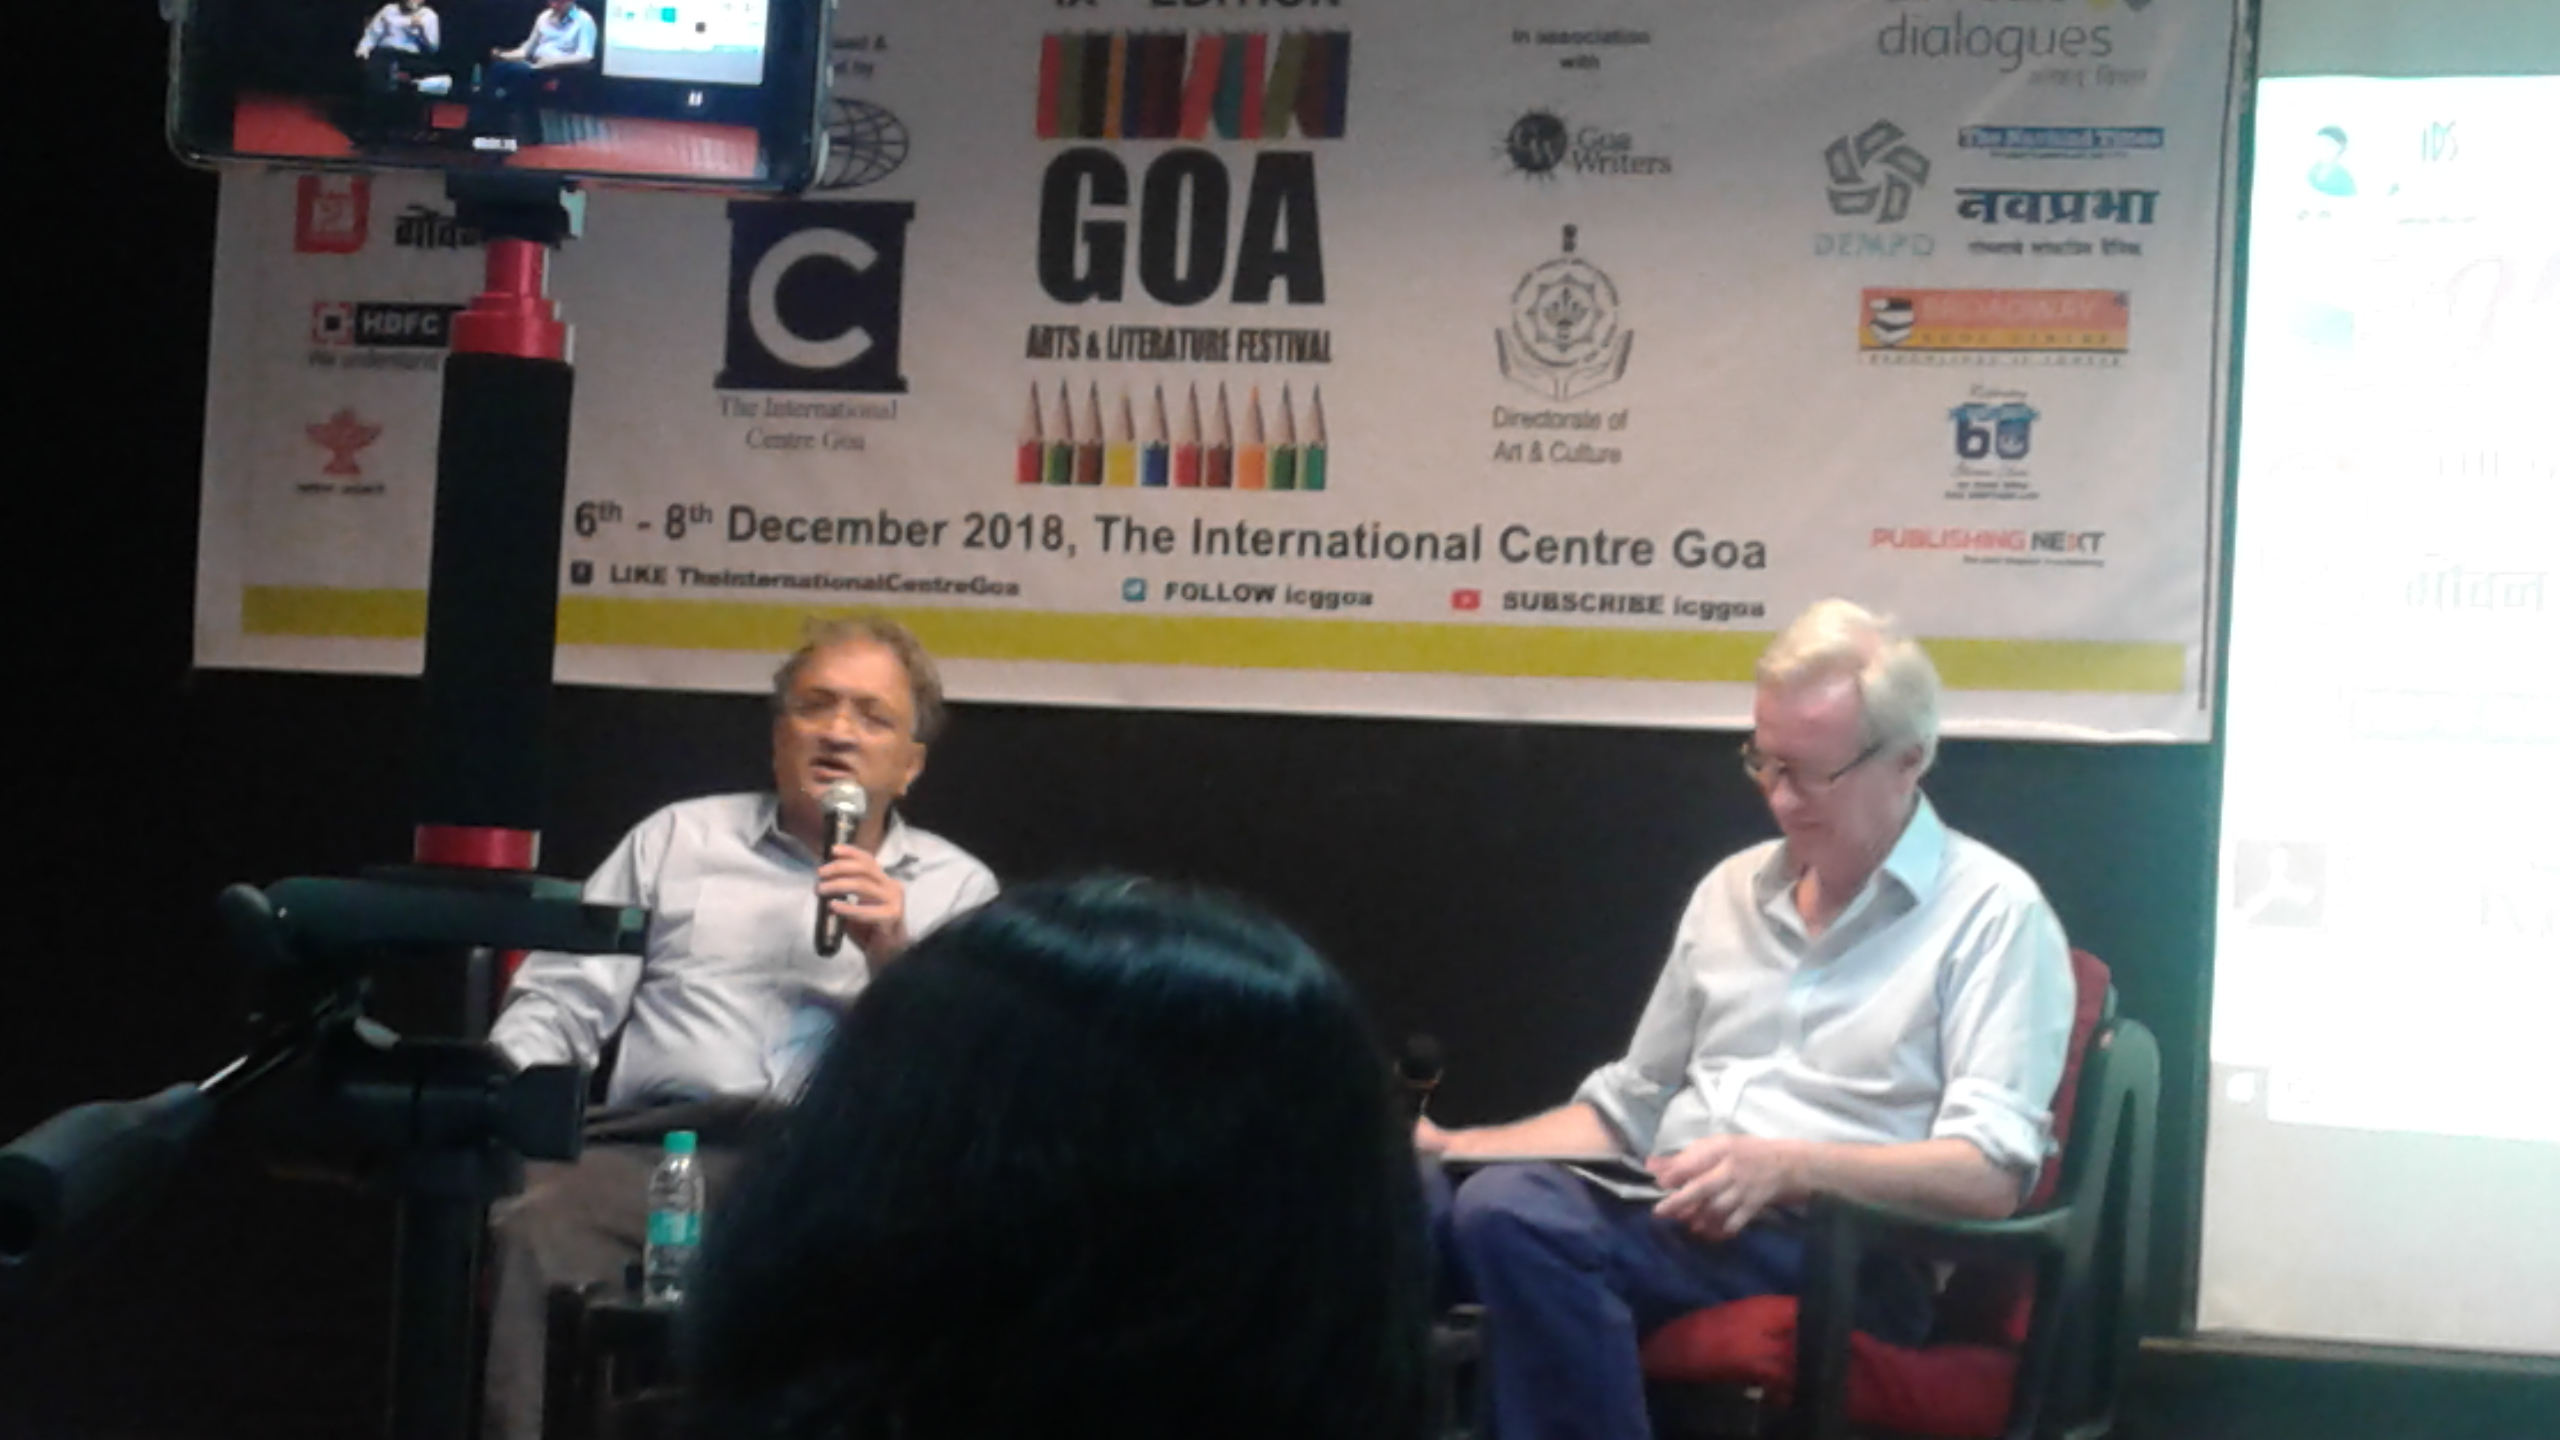 Ram Guha with David Gilmour